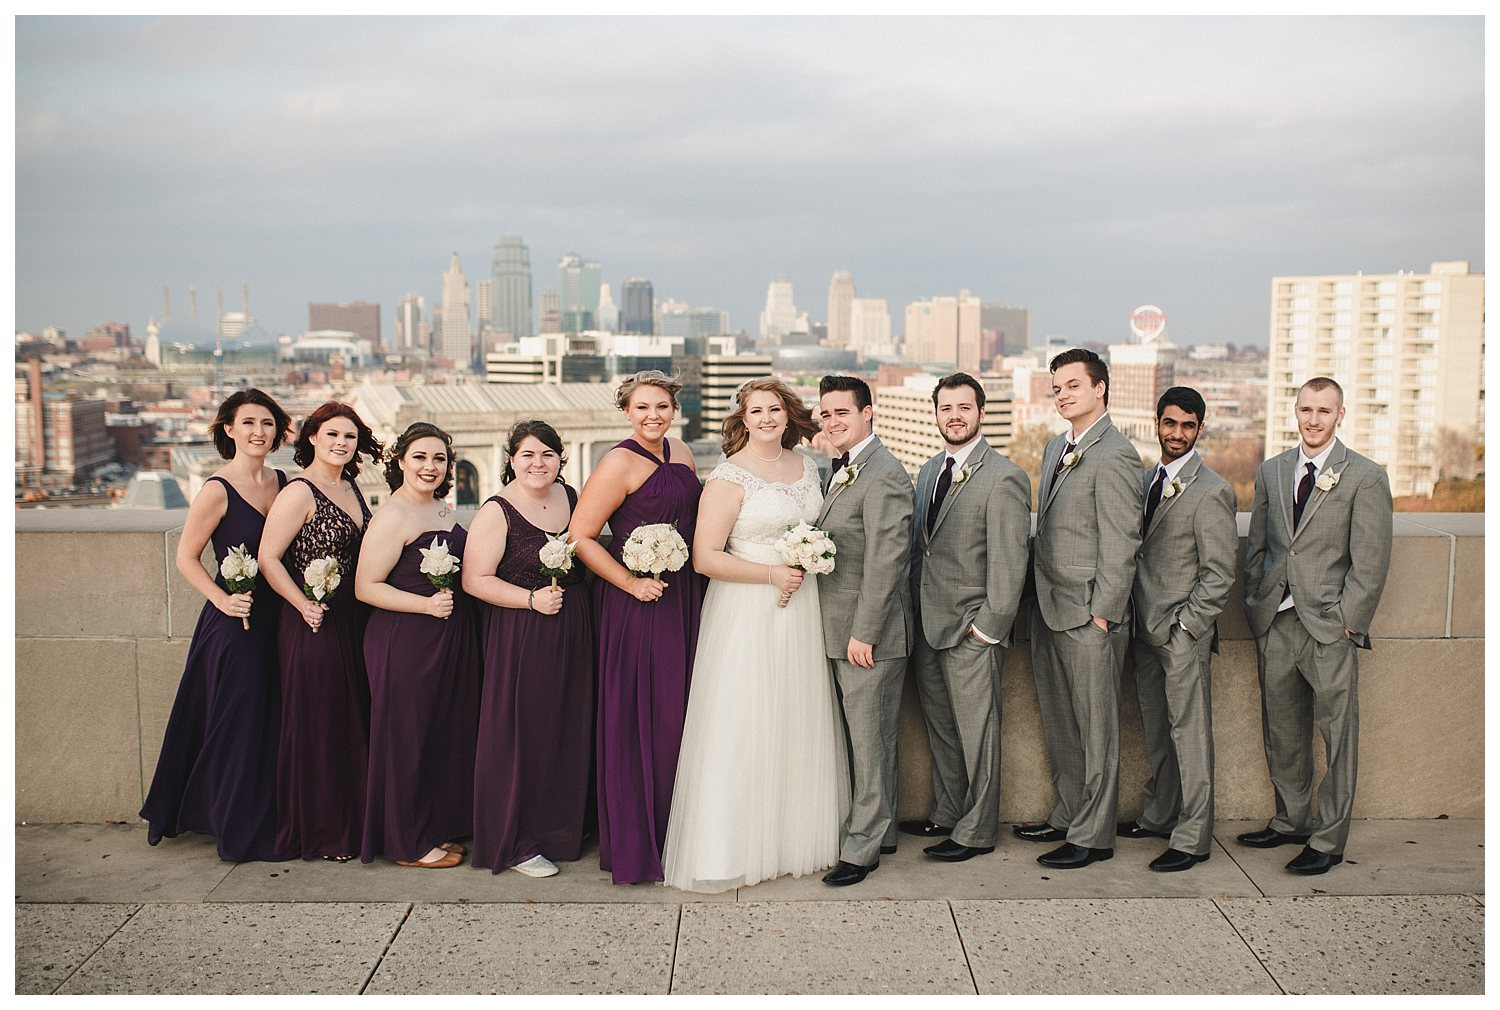 Kelsey_Diane_Photography_Loose_Mansion_Wedding_Photography_Kansas_City_Victor_Lyndsay_0355.jpg